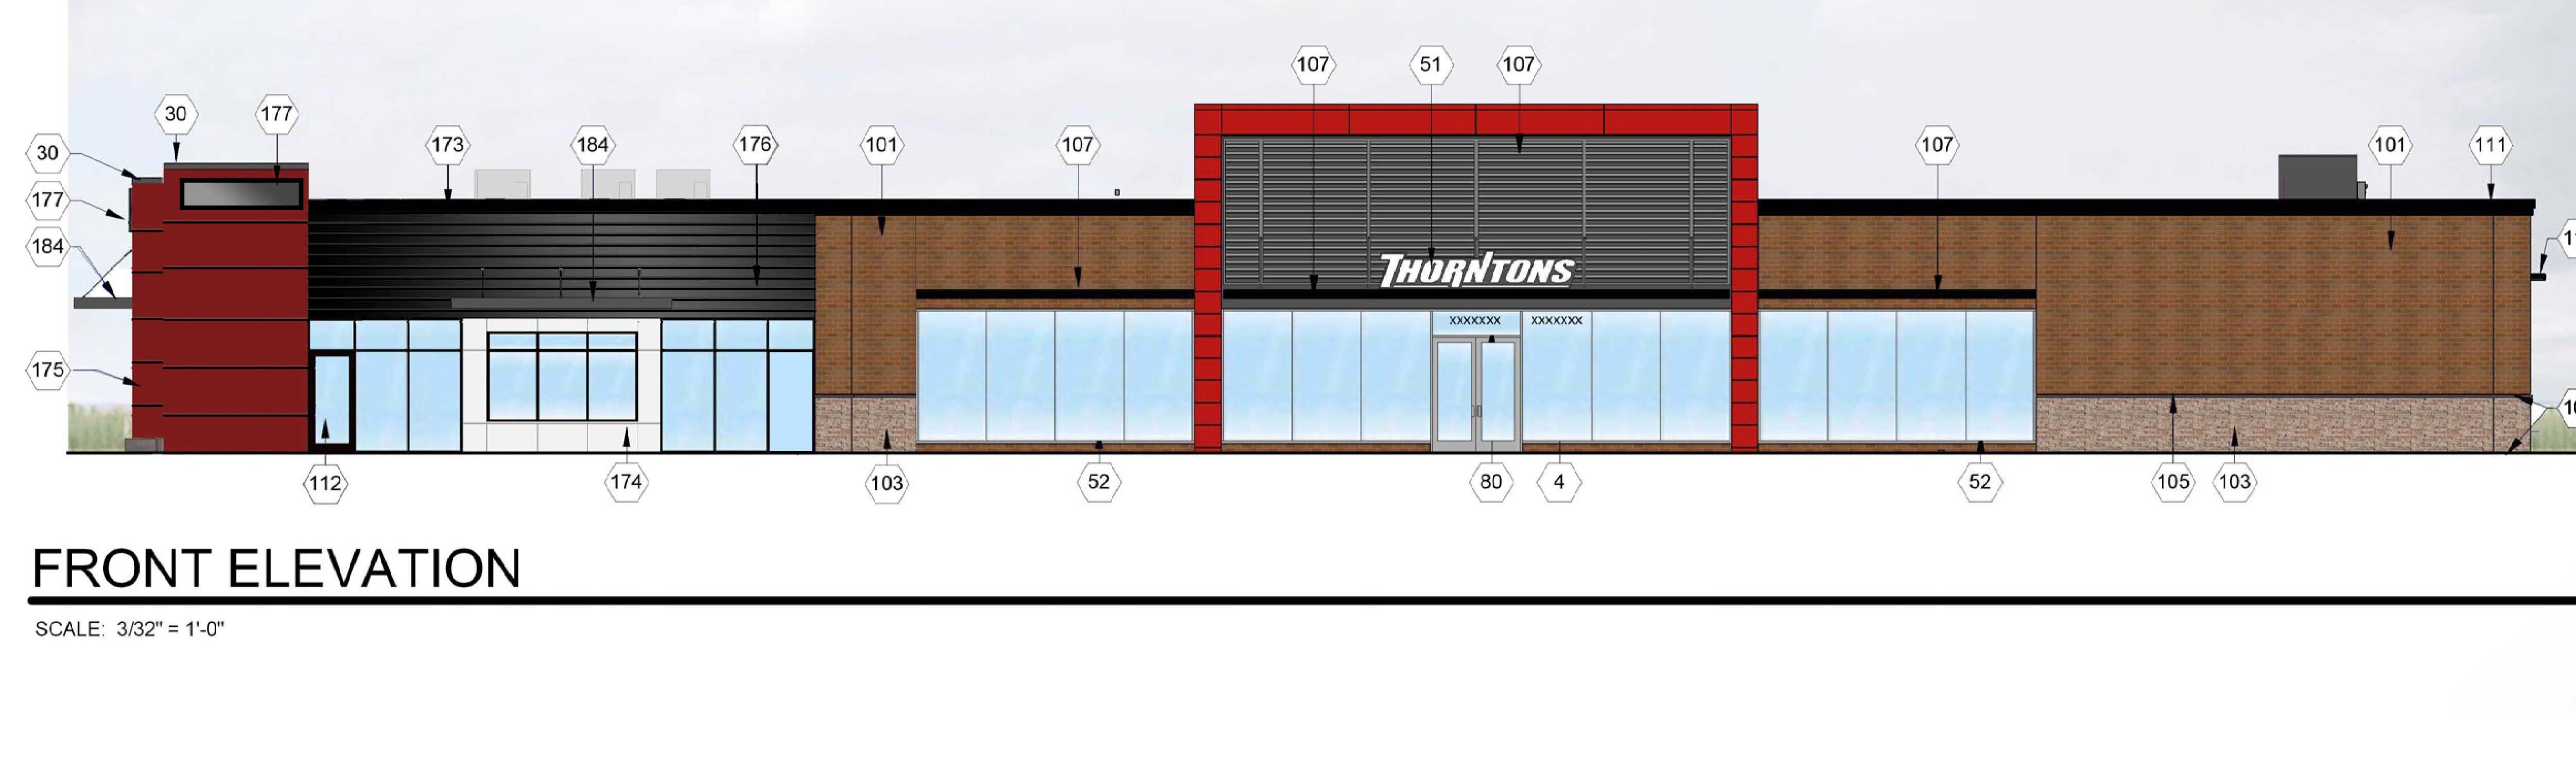 2 thornton Building Elevation.jpg